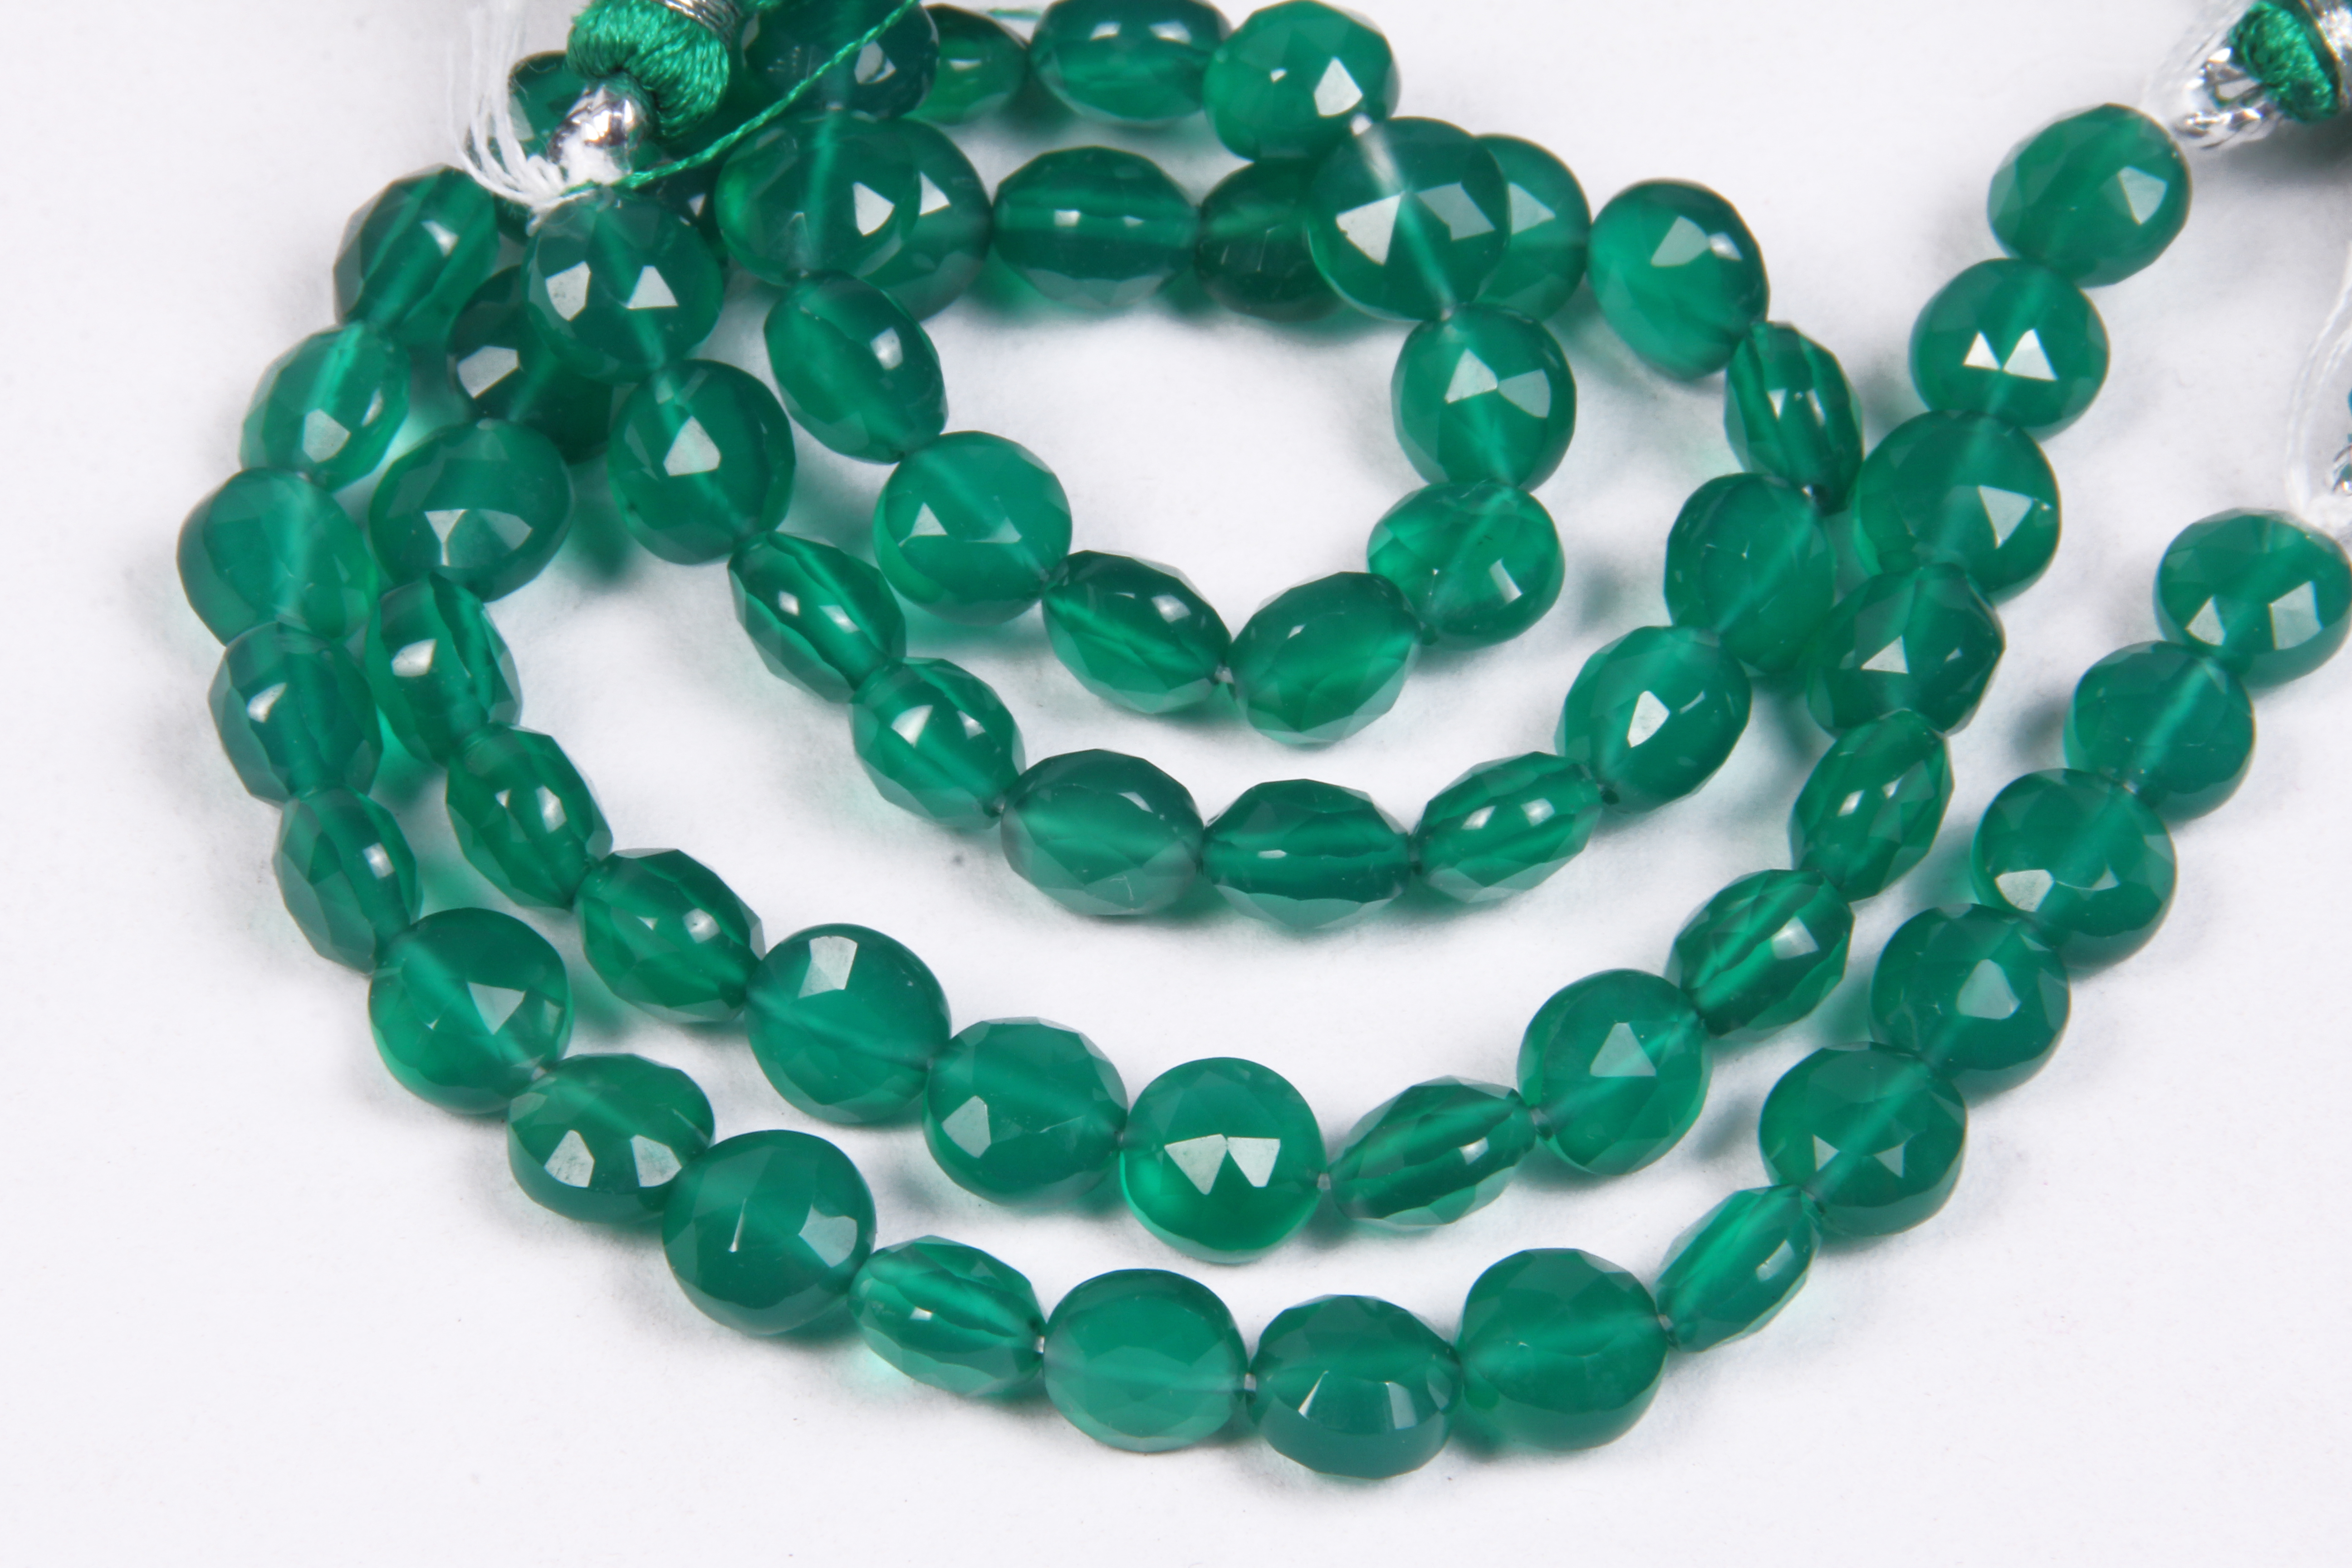 Green Onyx Coin Beads